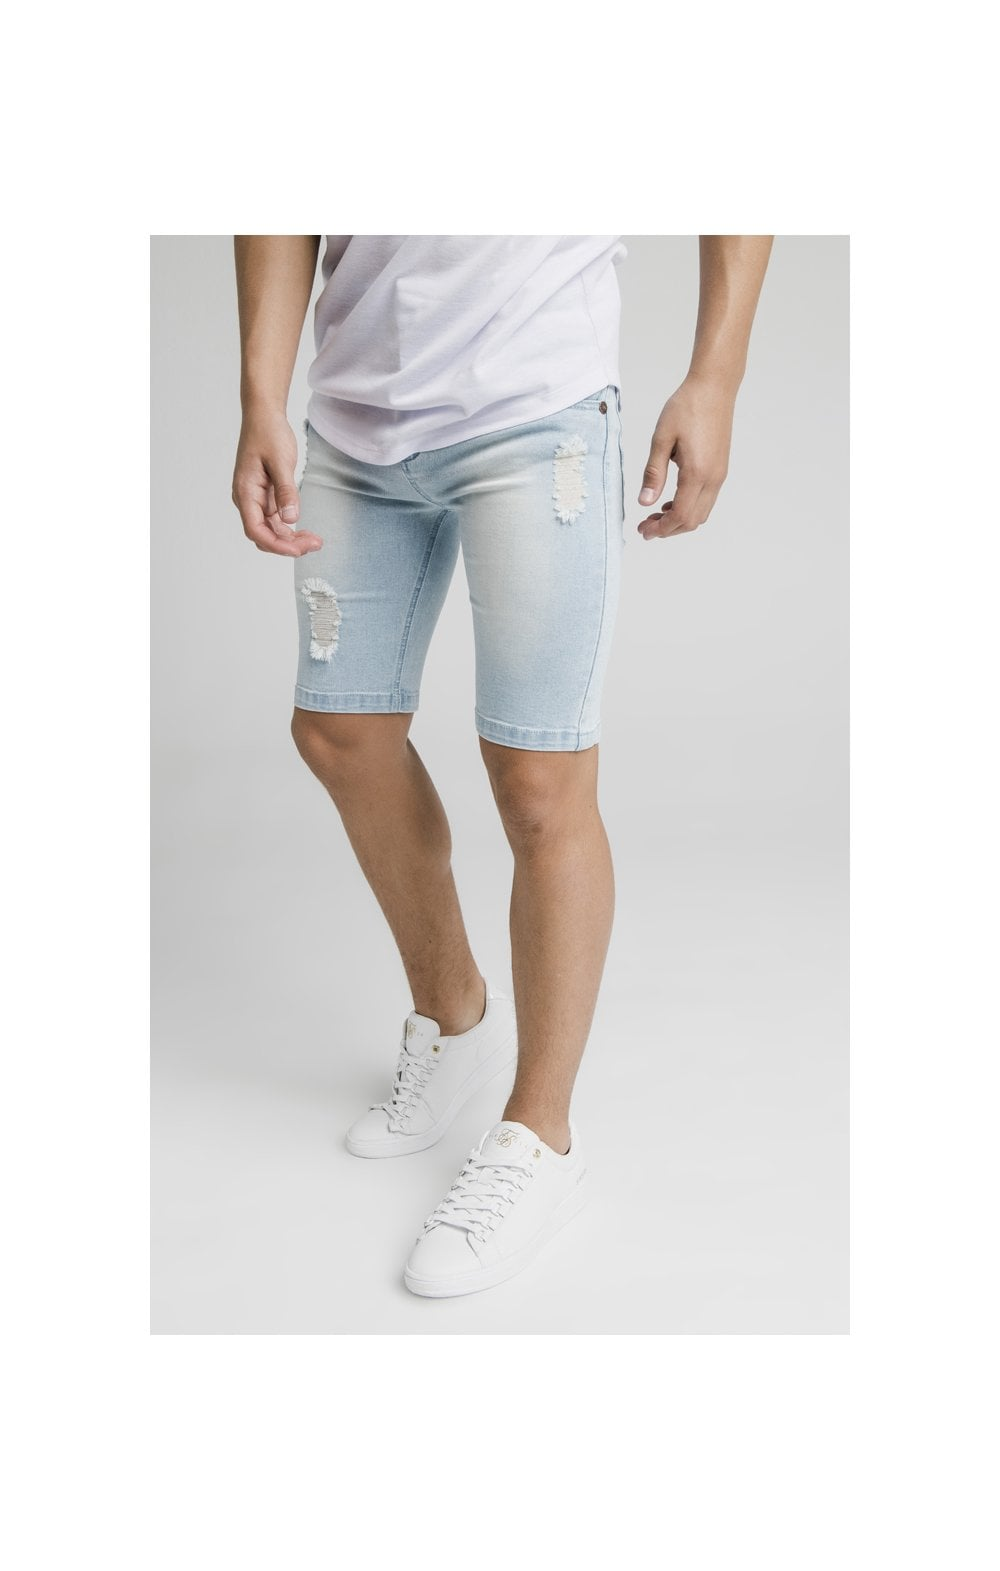 Load image into Gallery viewer, Illusive London Distressed Denim Shorts - Light Blue